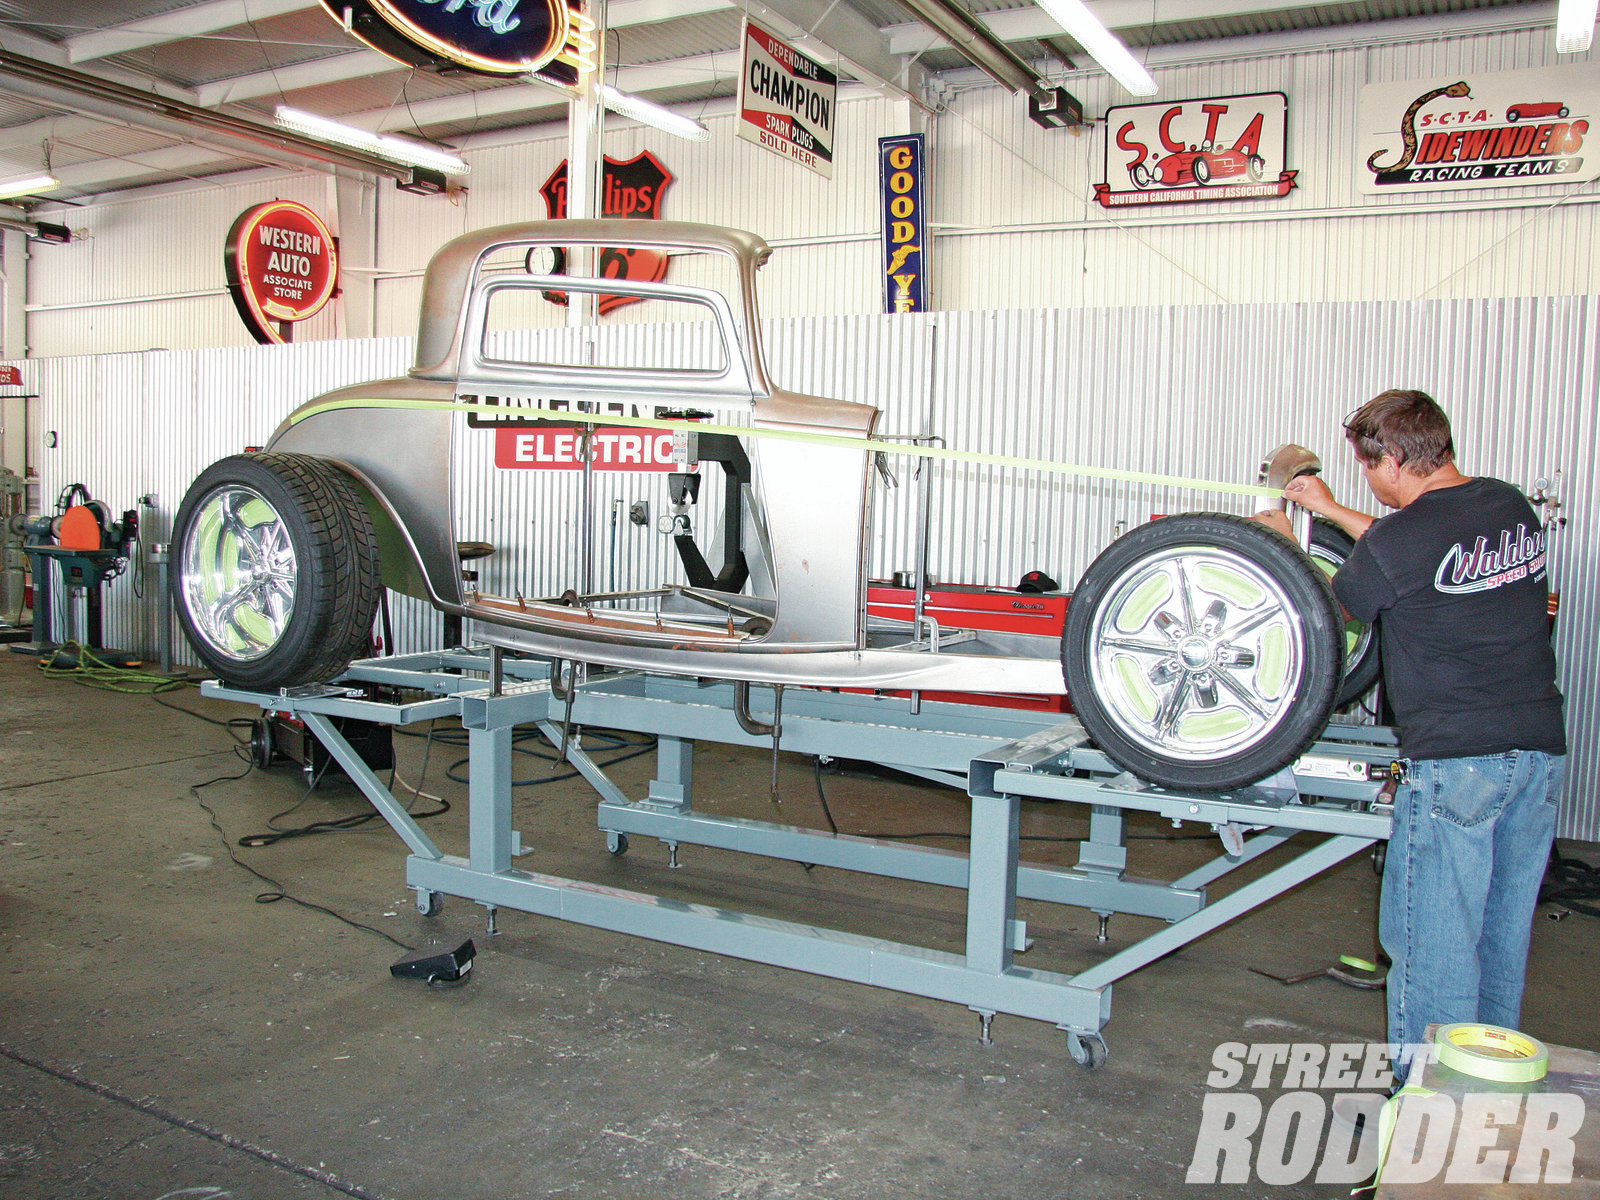 The side panel is placed on his jig, and tape is used to eyeball where the coupe's body line will be, plus the height of the grille and radiator. (Note the rear wheel is placed just for general reference).